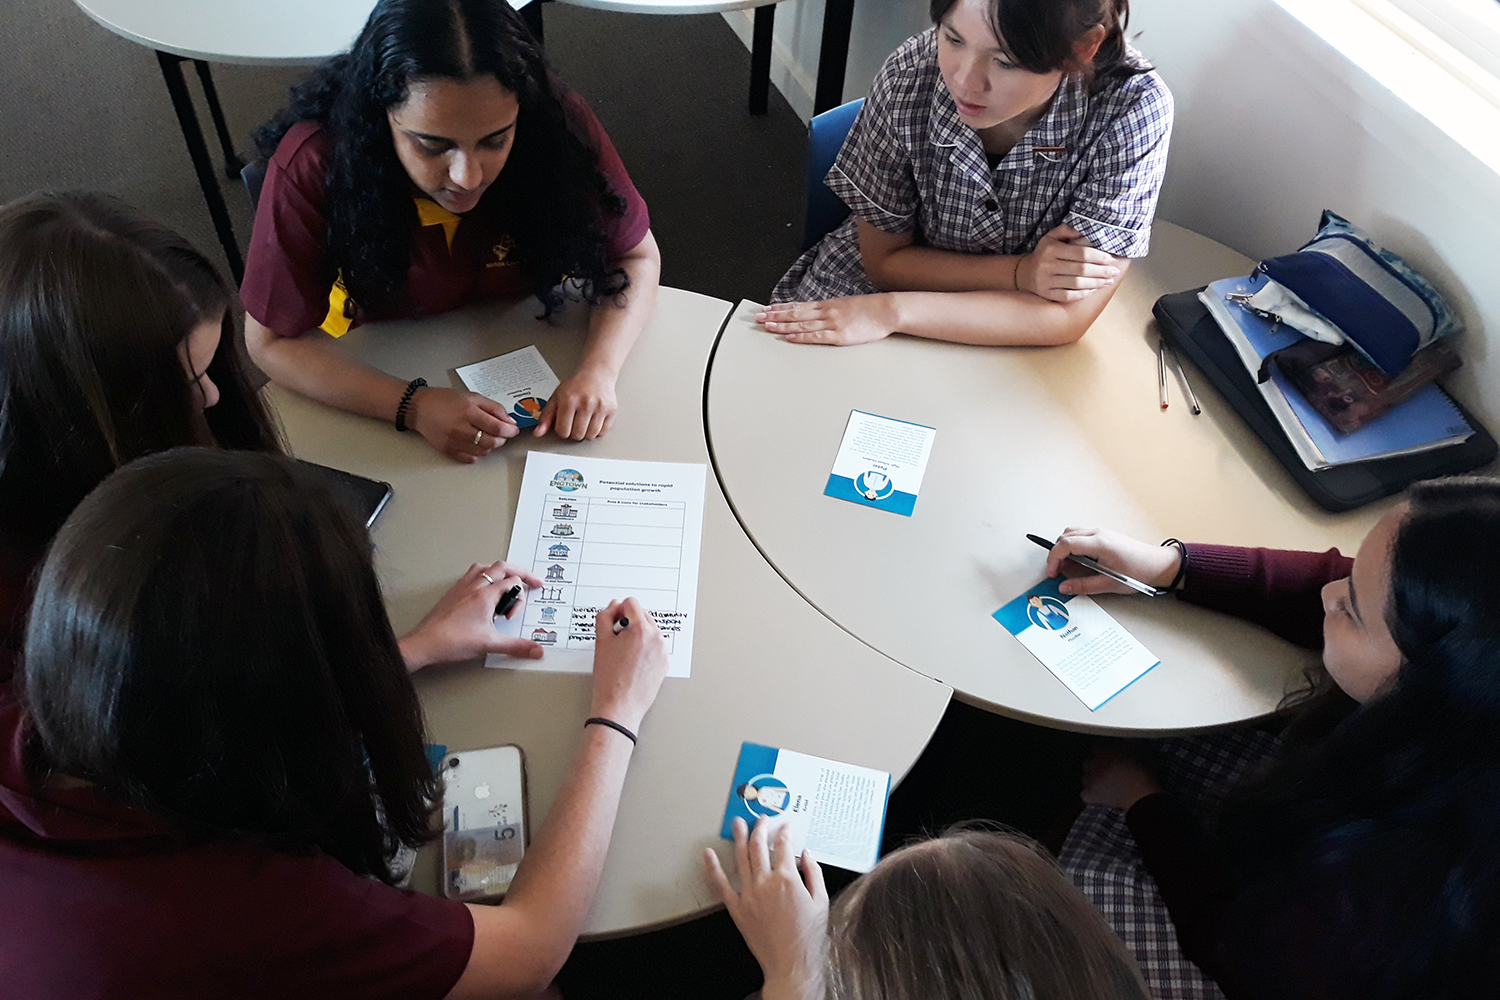 Students are tasked with solving engineering challenges related to population growth in the remote community of Engtown. (Image: Power of Engineering)